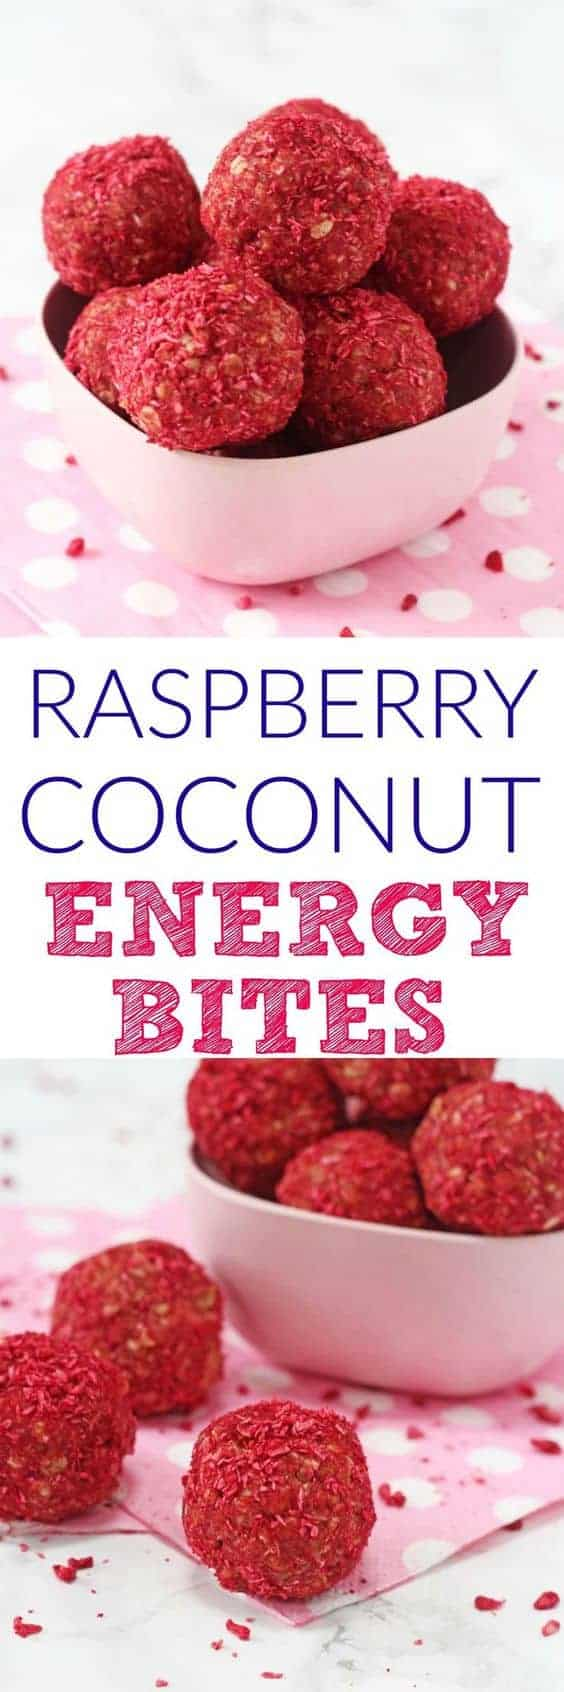 Raspberry and Coconut Energy Bites by My Fussy Eater | The Ultimate Collection of Energy Bites Recipes